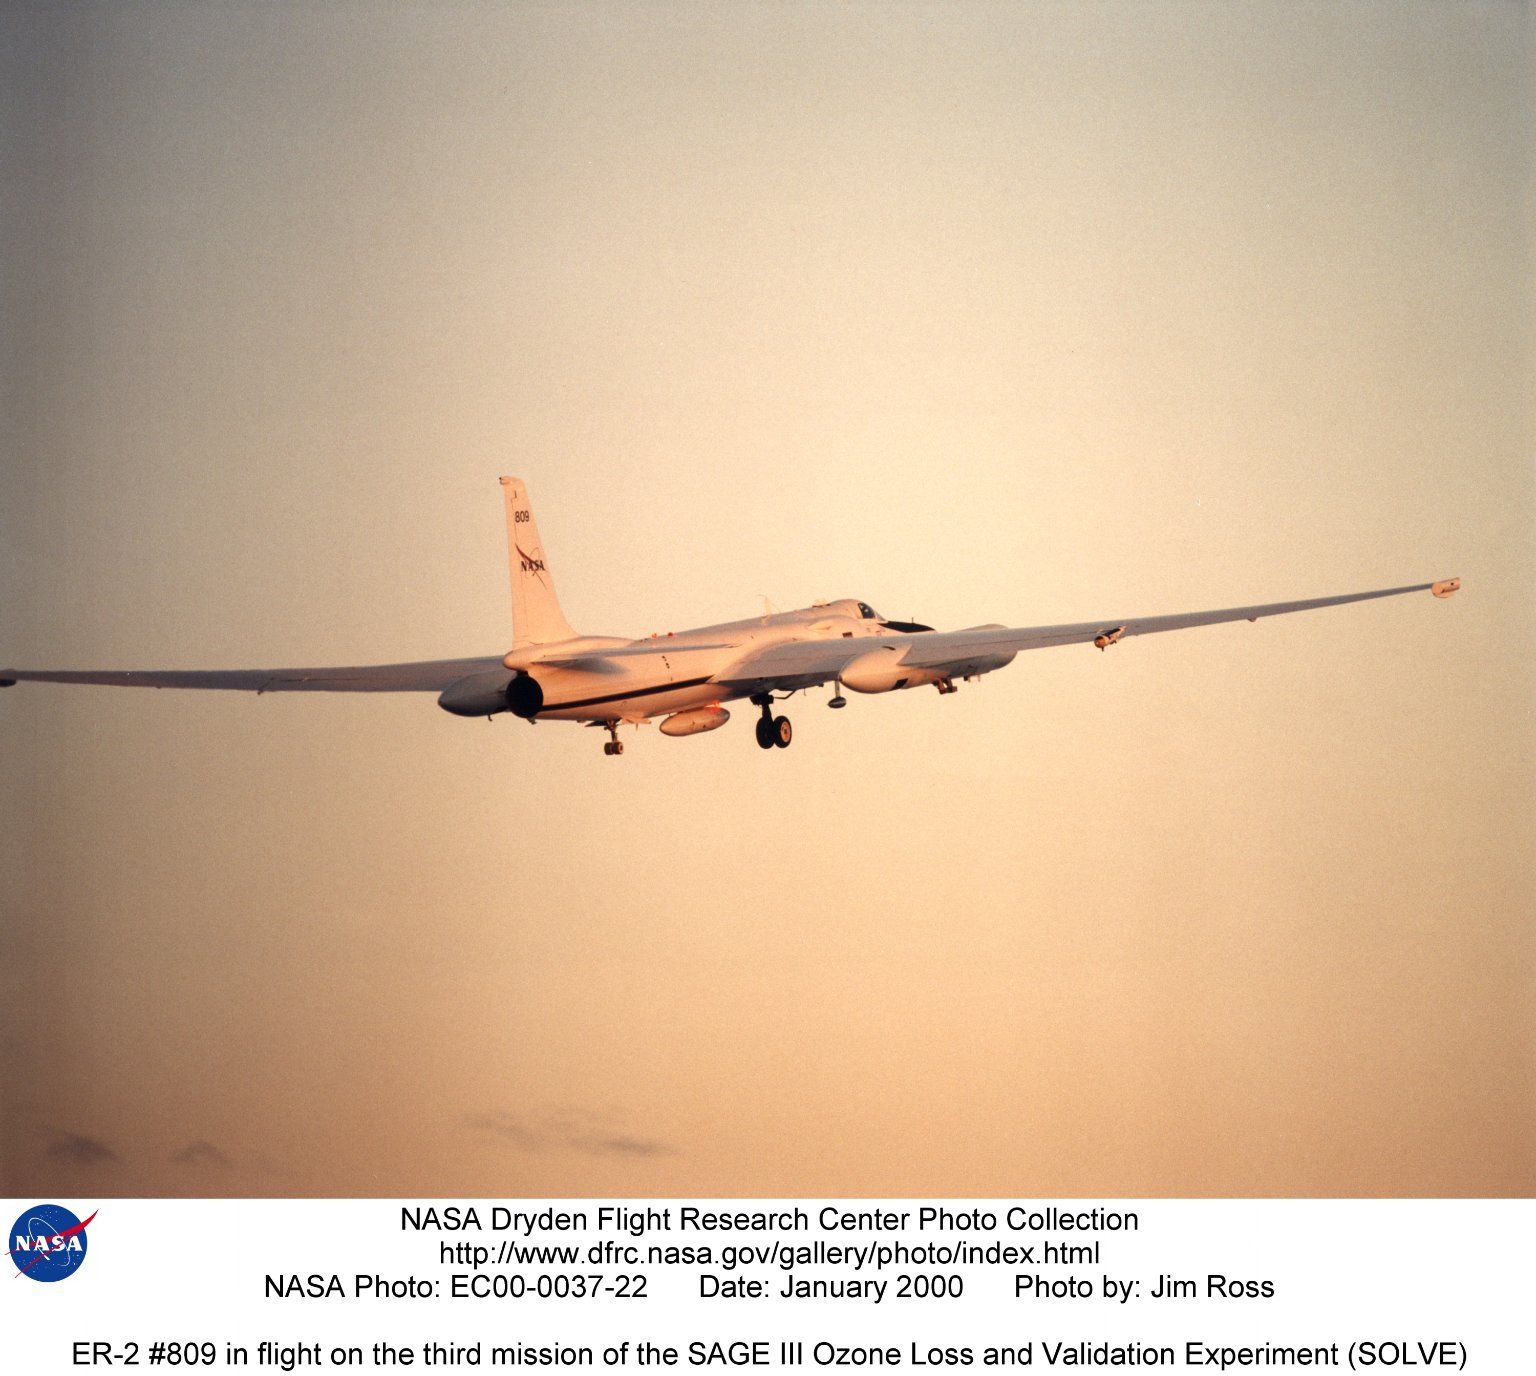 ER-2 #809 in flight on the third mission of the SAGE III Ozone Loss and Validation Experiment (SOLVE